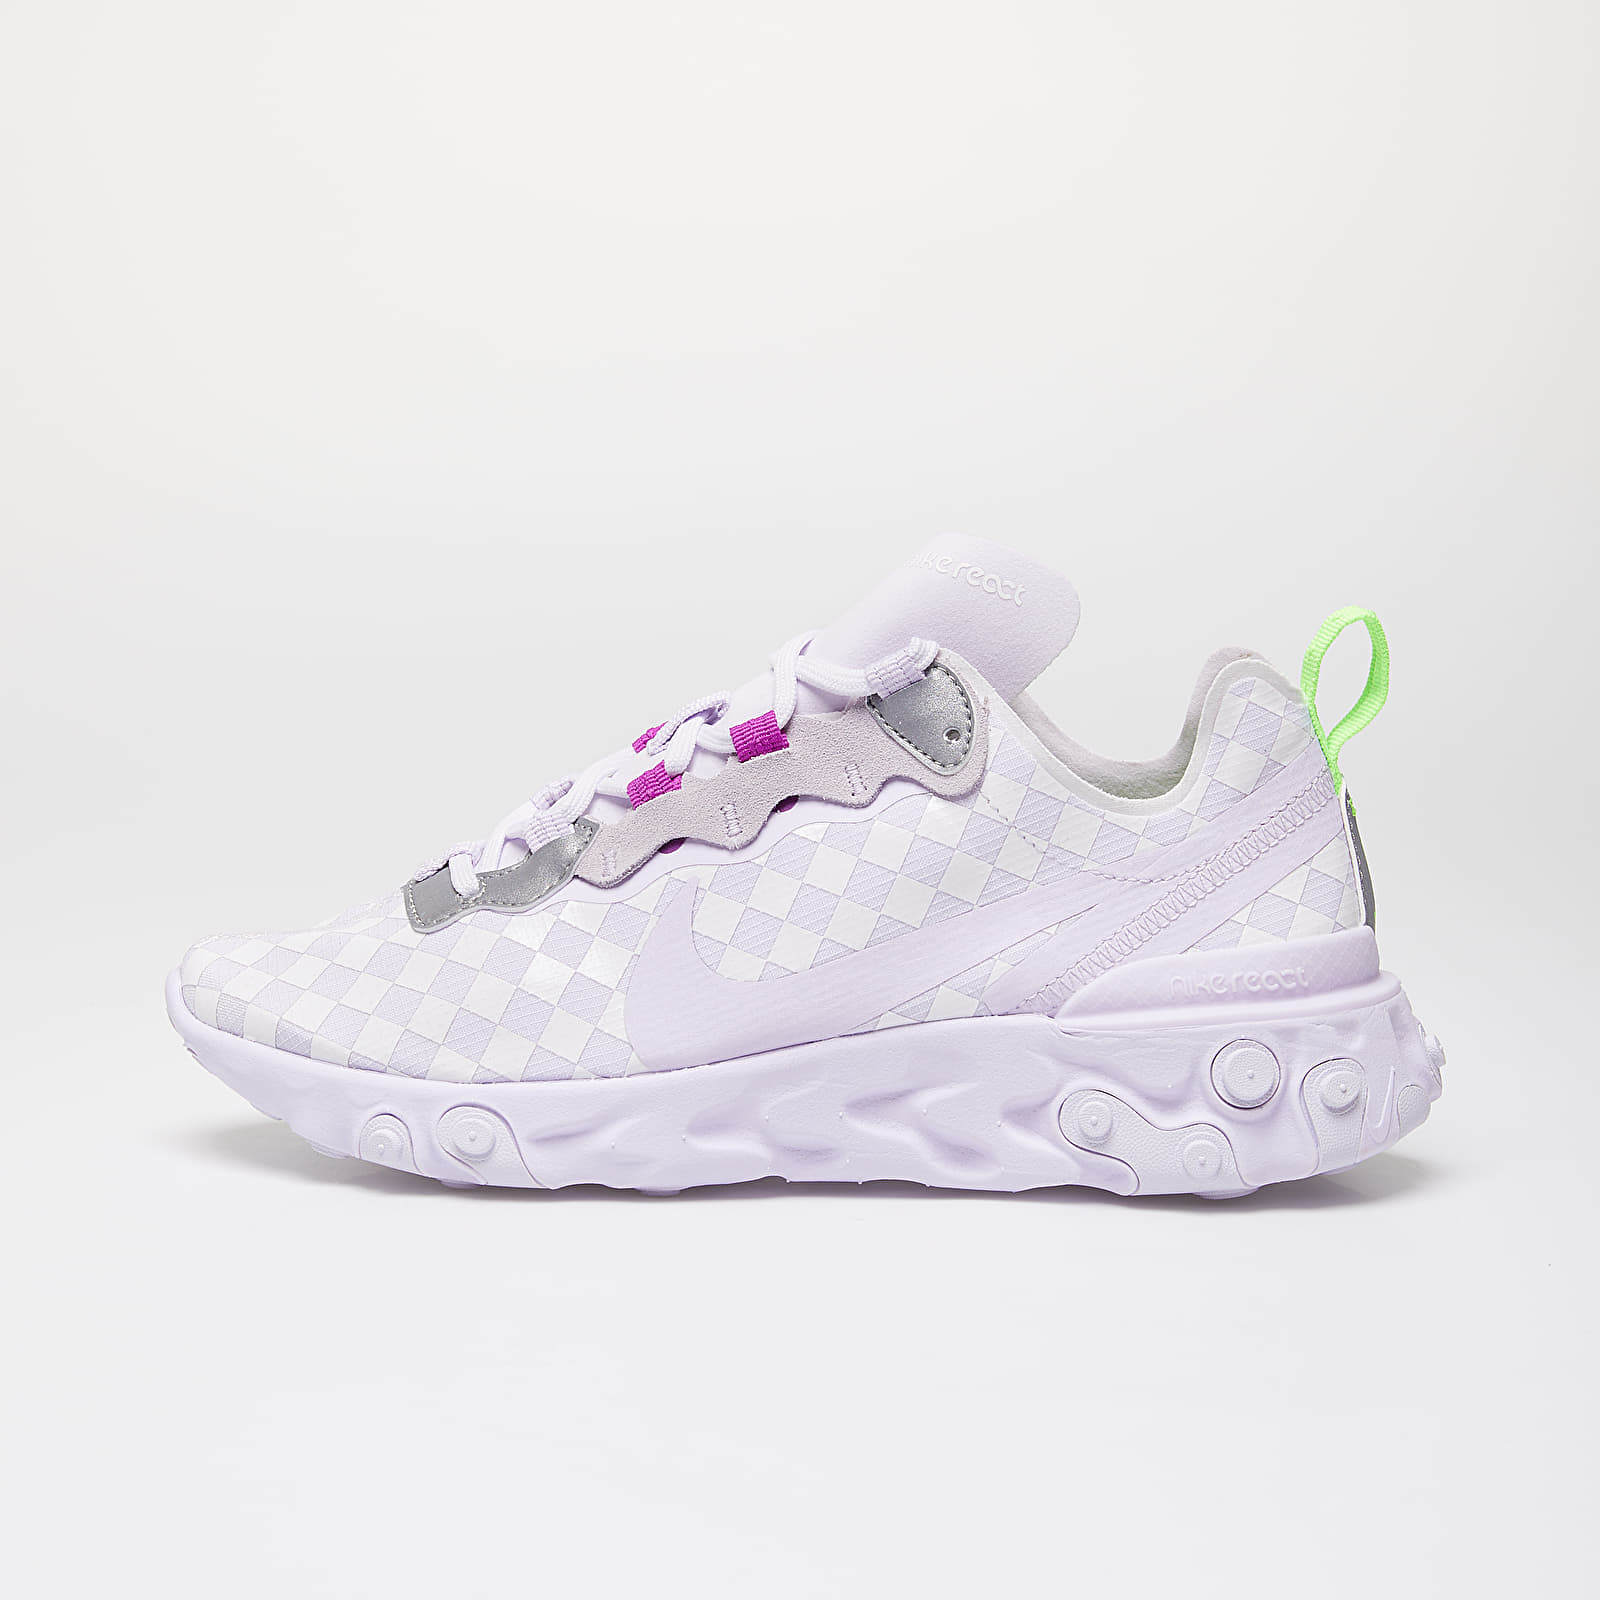 Scarpe e sneaker da donna Nike Wmns React Element 55 Barely Grape/ Barely Grape